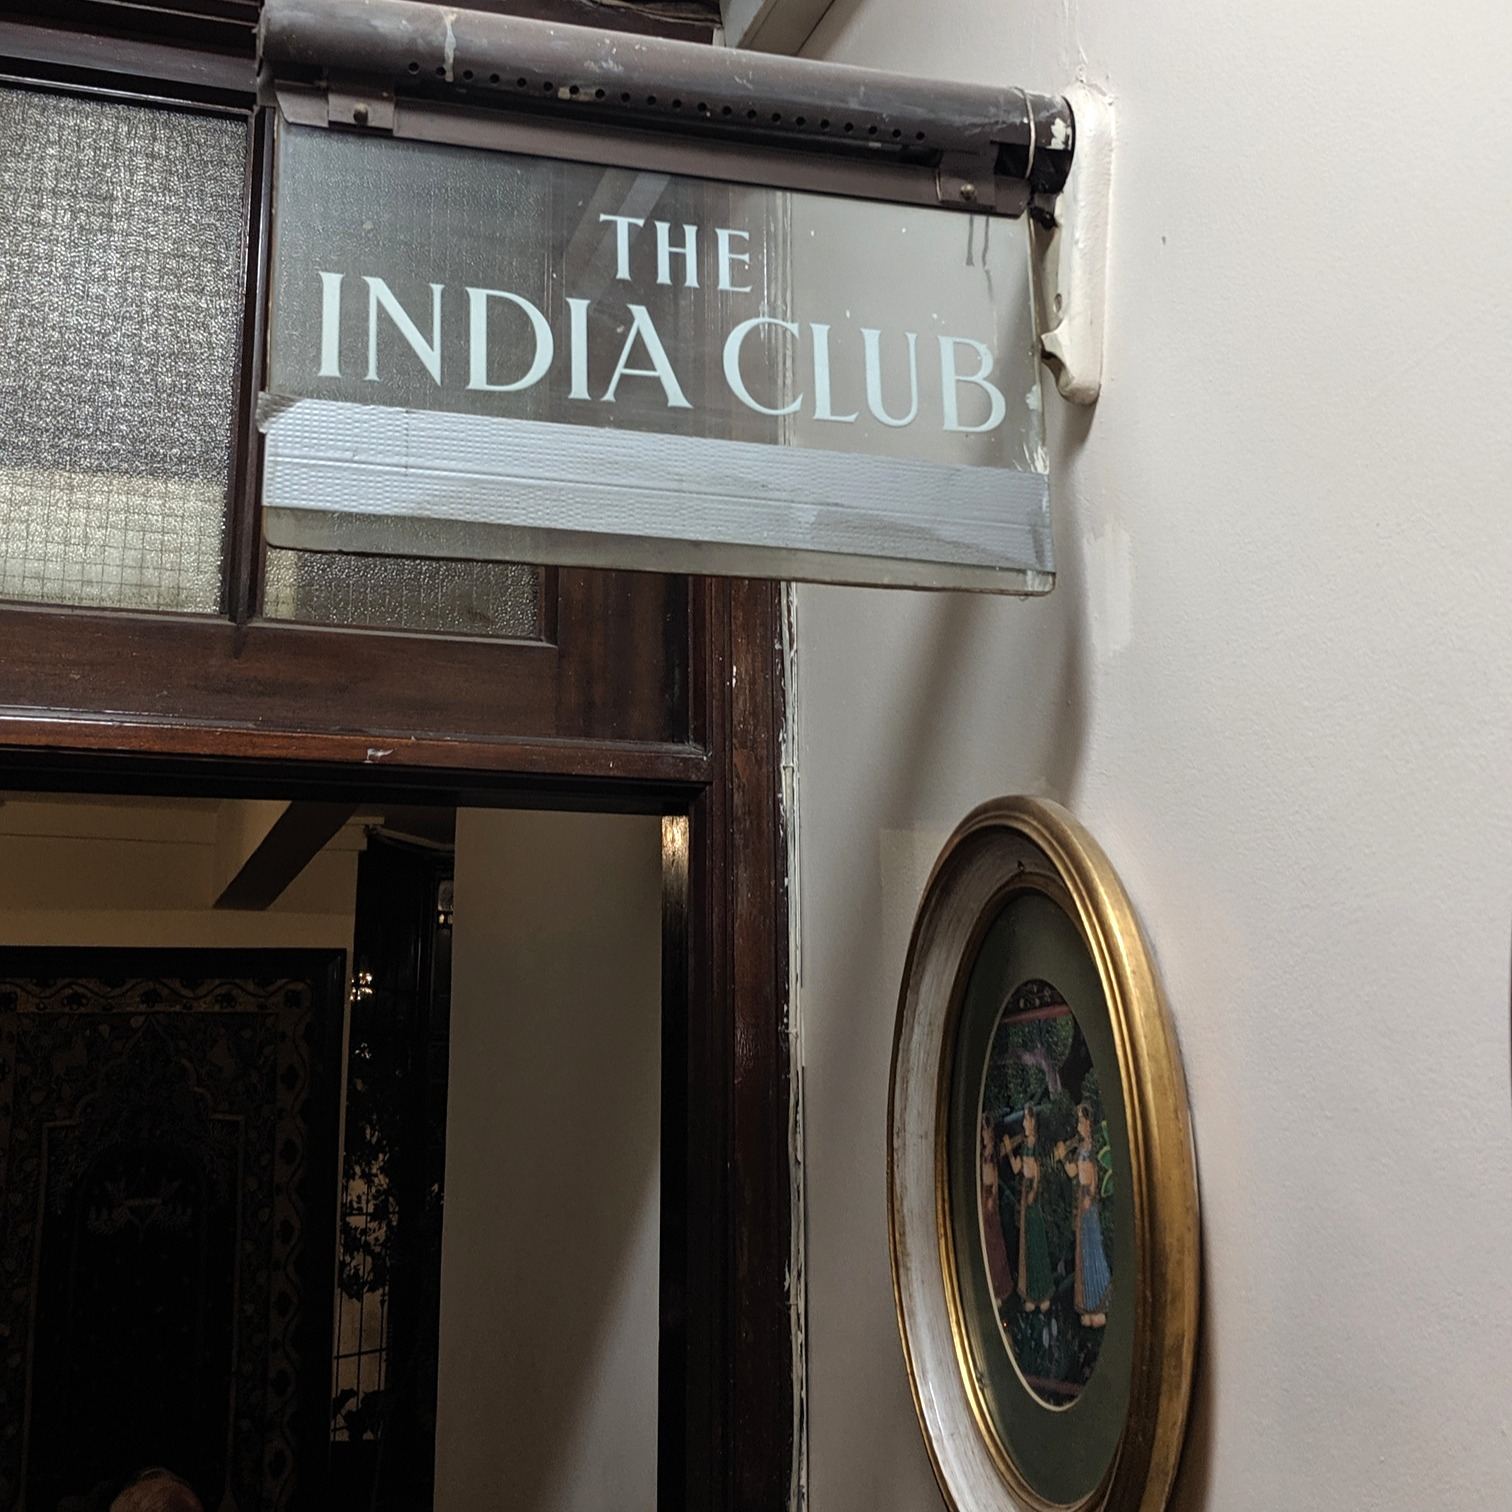 The India Club Lounge